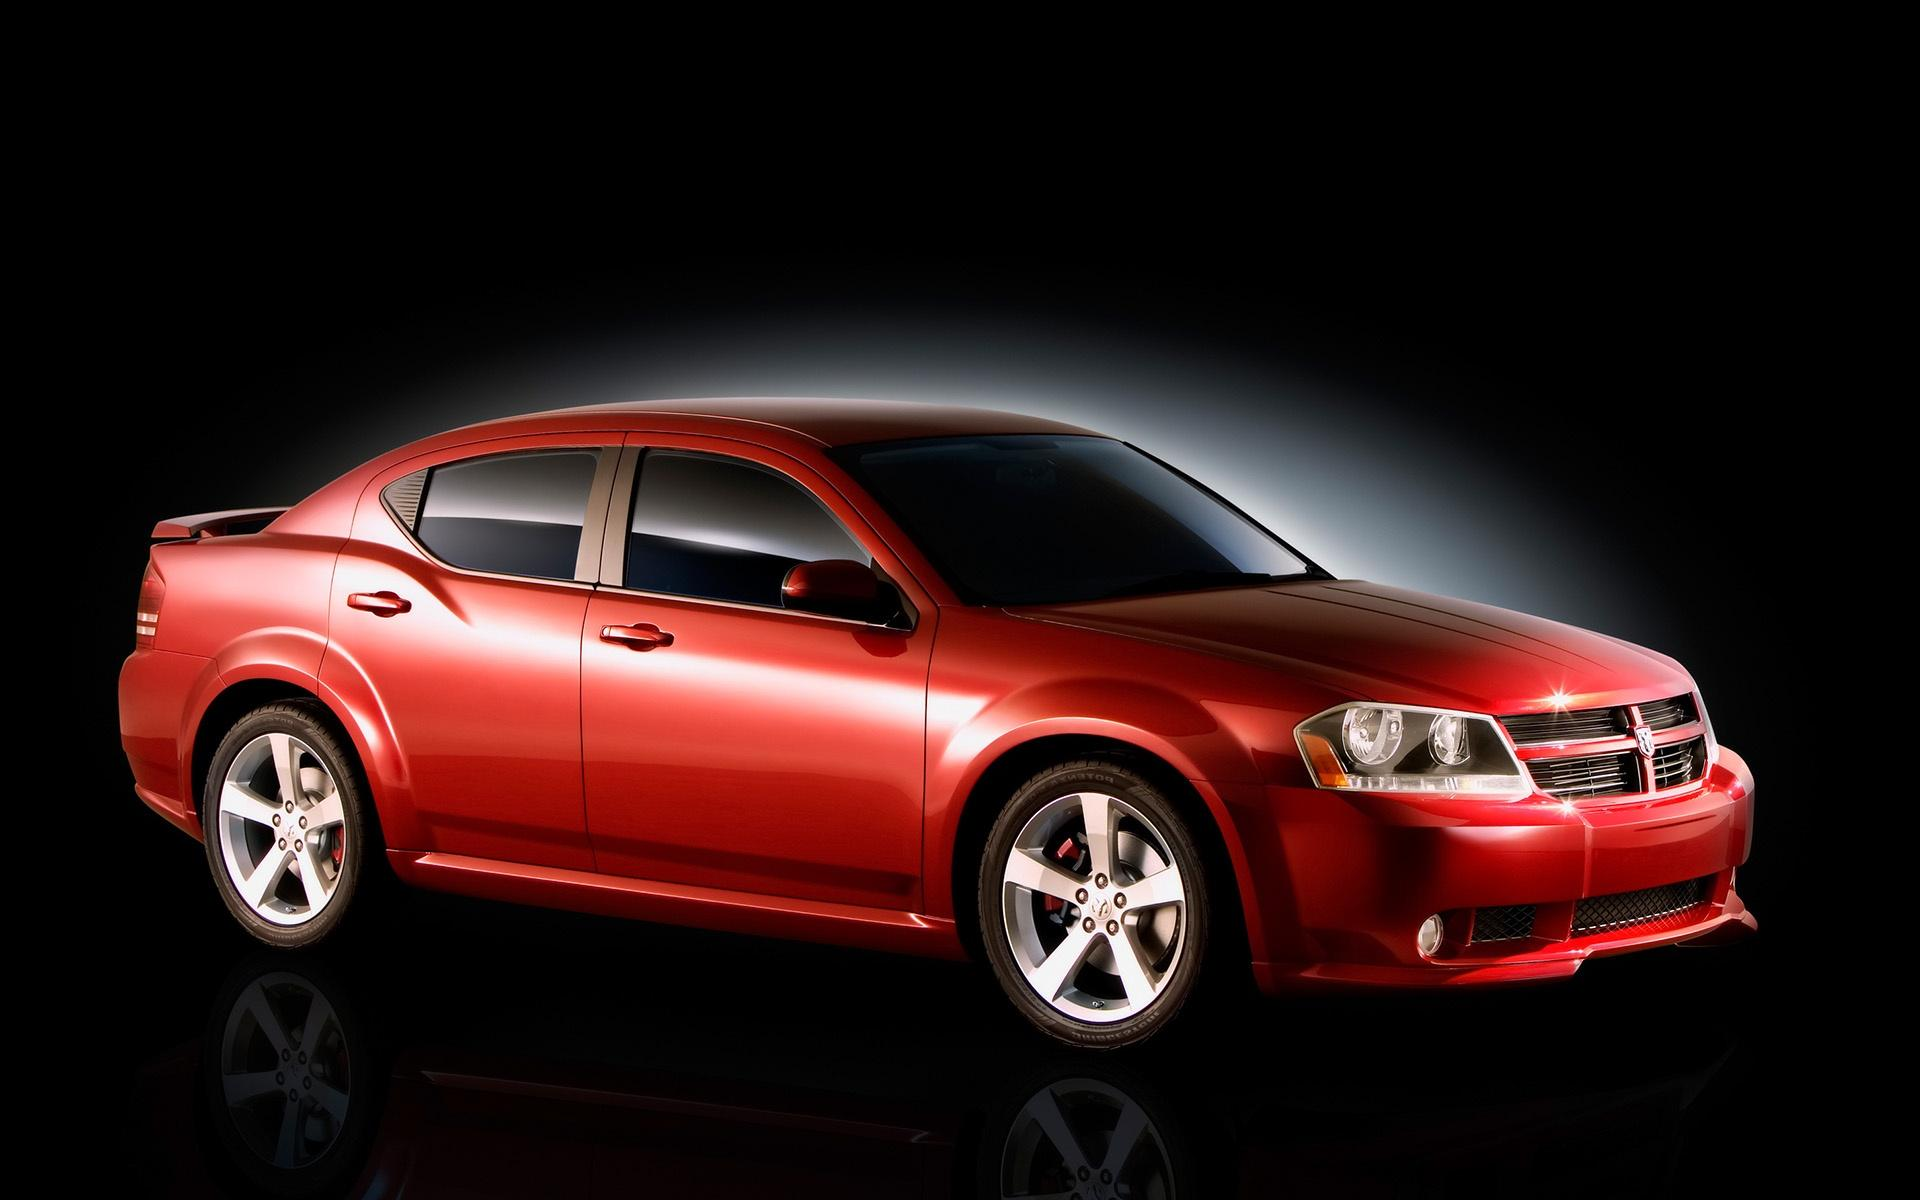 2006 Dodge Avenger Concept Front And Side 1920x1200